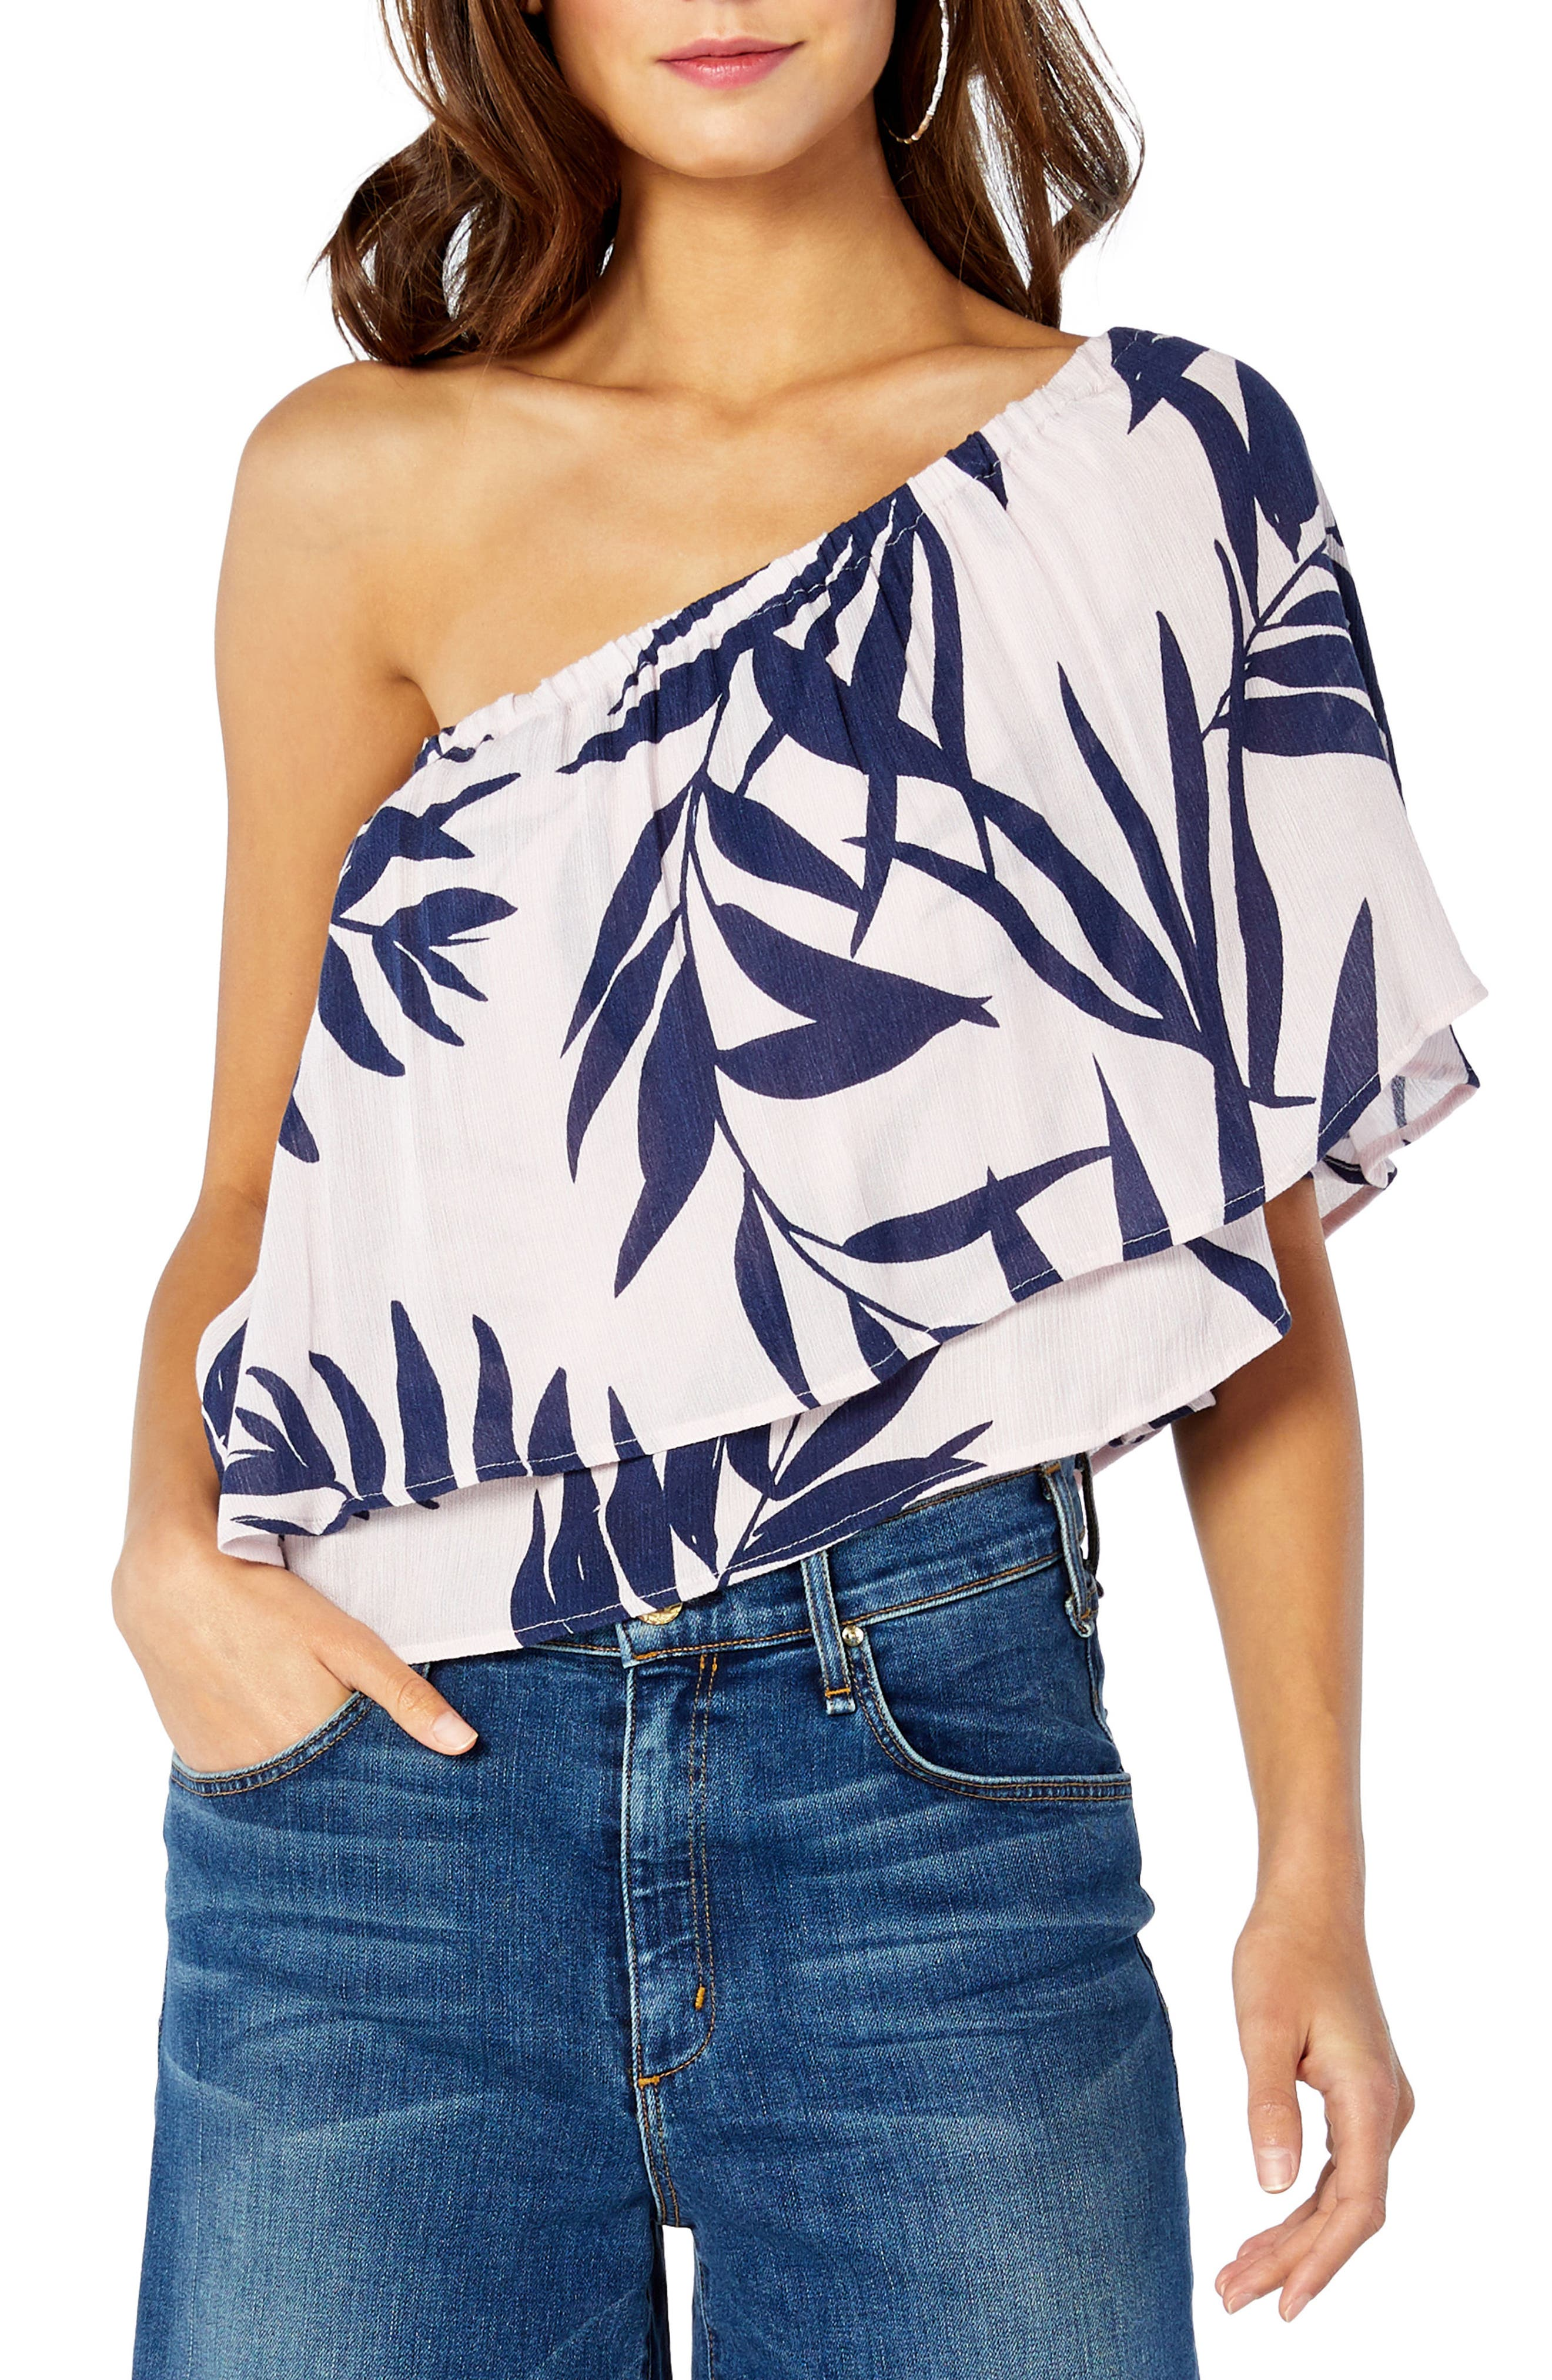 Paradiso Convertible Top,                             Alternate thumbnail 10, color,